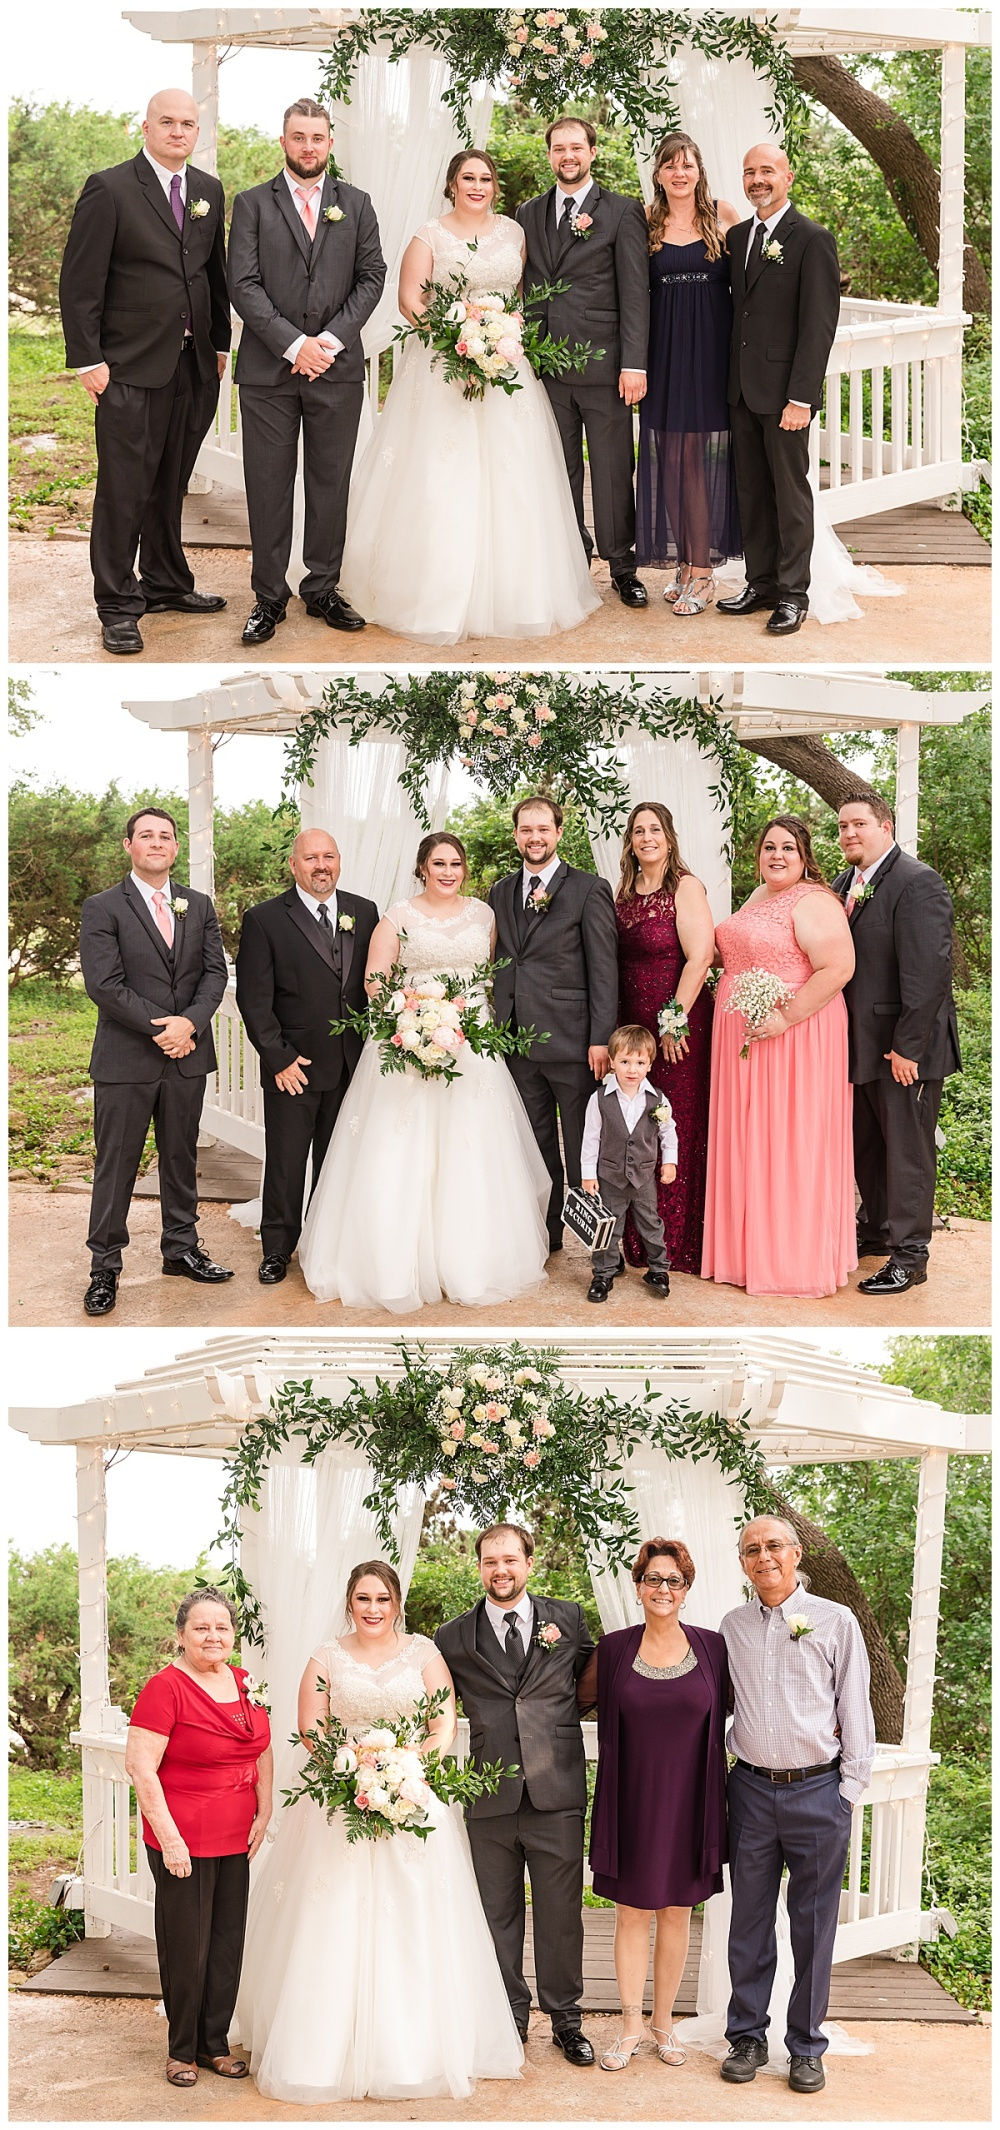 Michael-Tiffany-Wedding-New-Braunfels-Texas-Canyon-Lake-Cabins-and-Cottages-Carly-Barton-Photography_0027.jpg